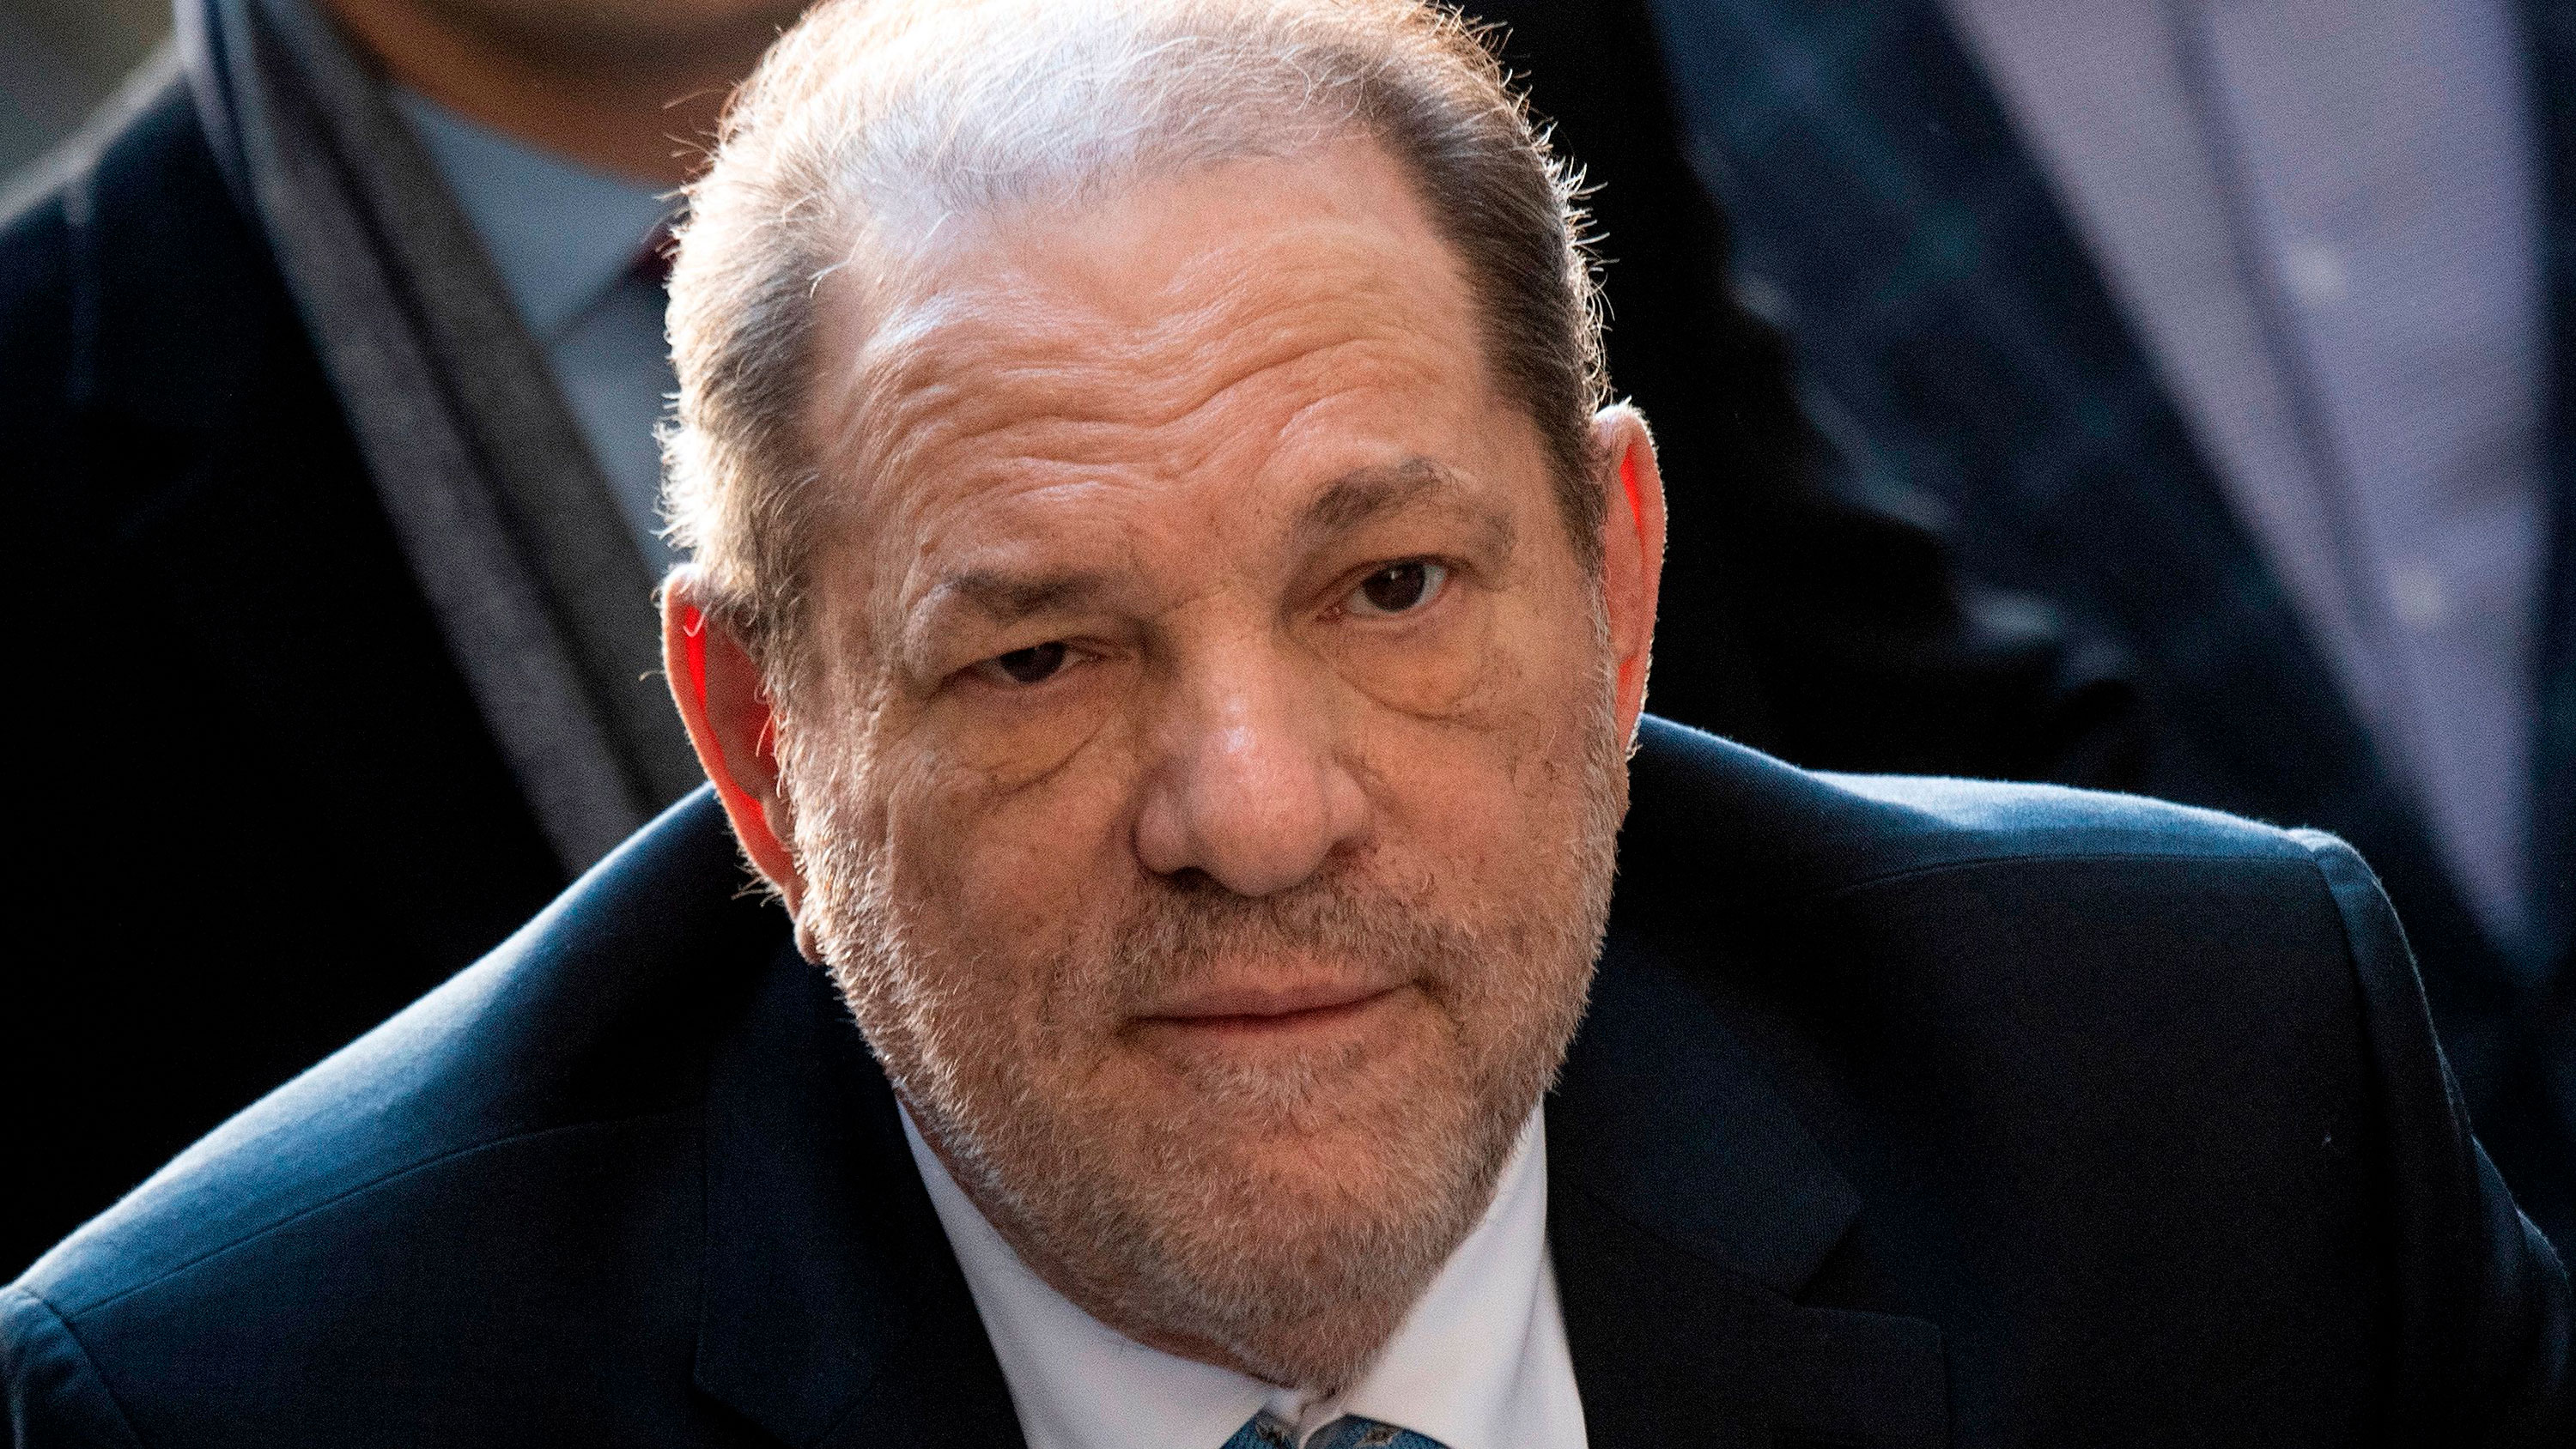 A judge has approved a $17 million settlement plan for sexual misconduct victims of Harvey Weinstein